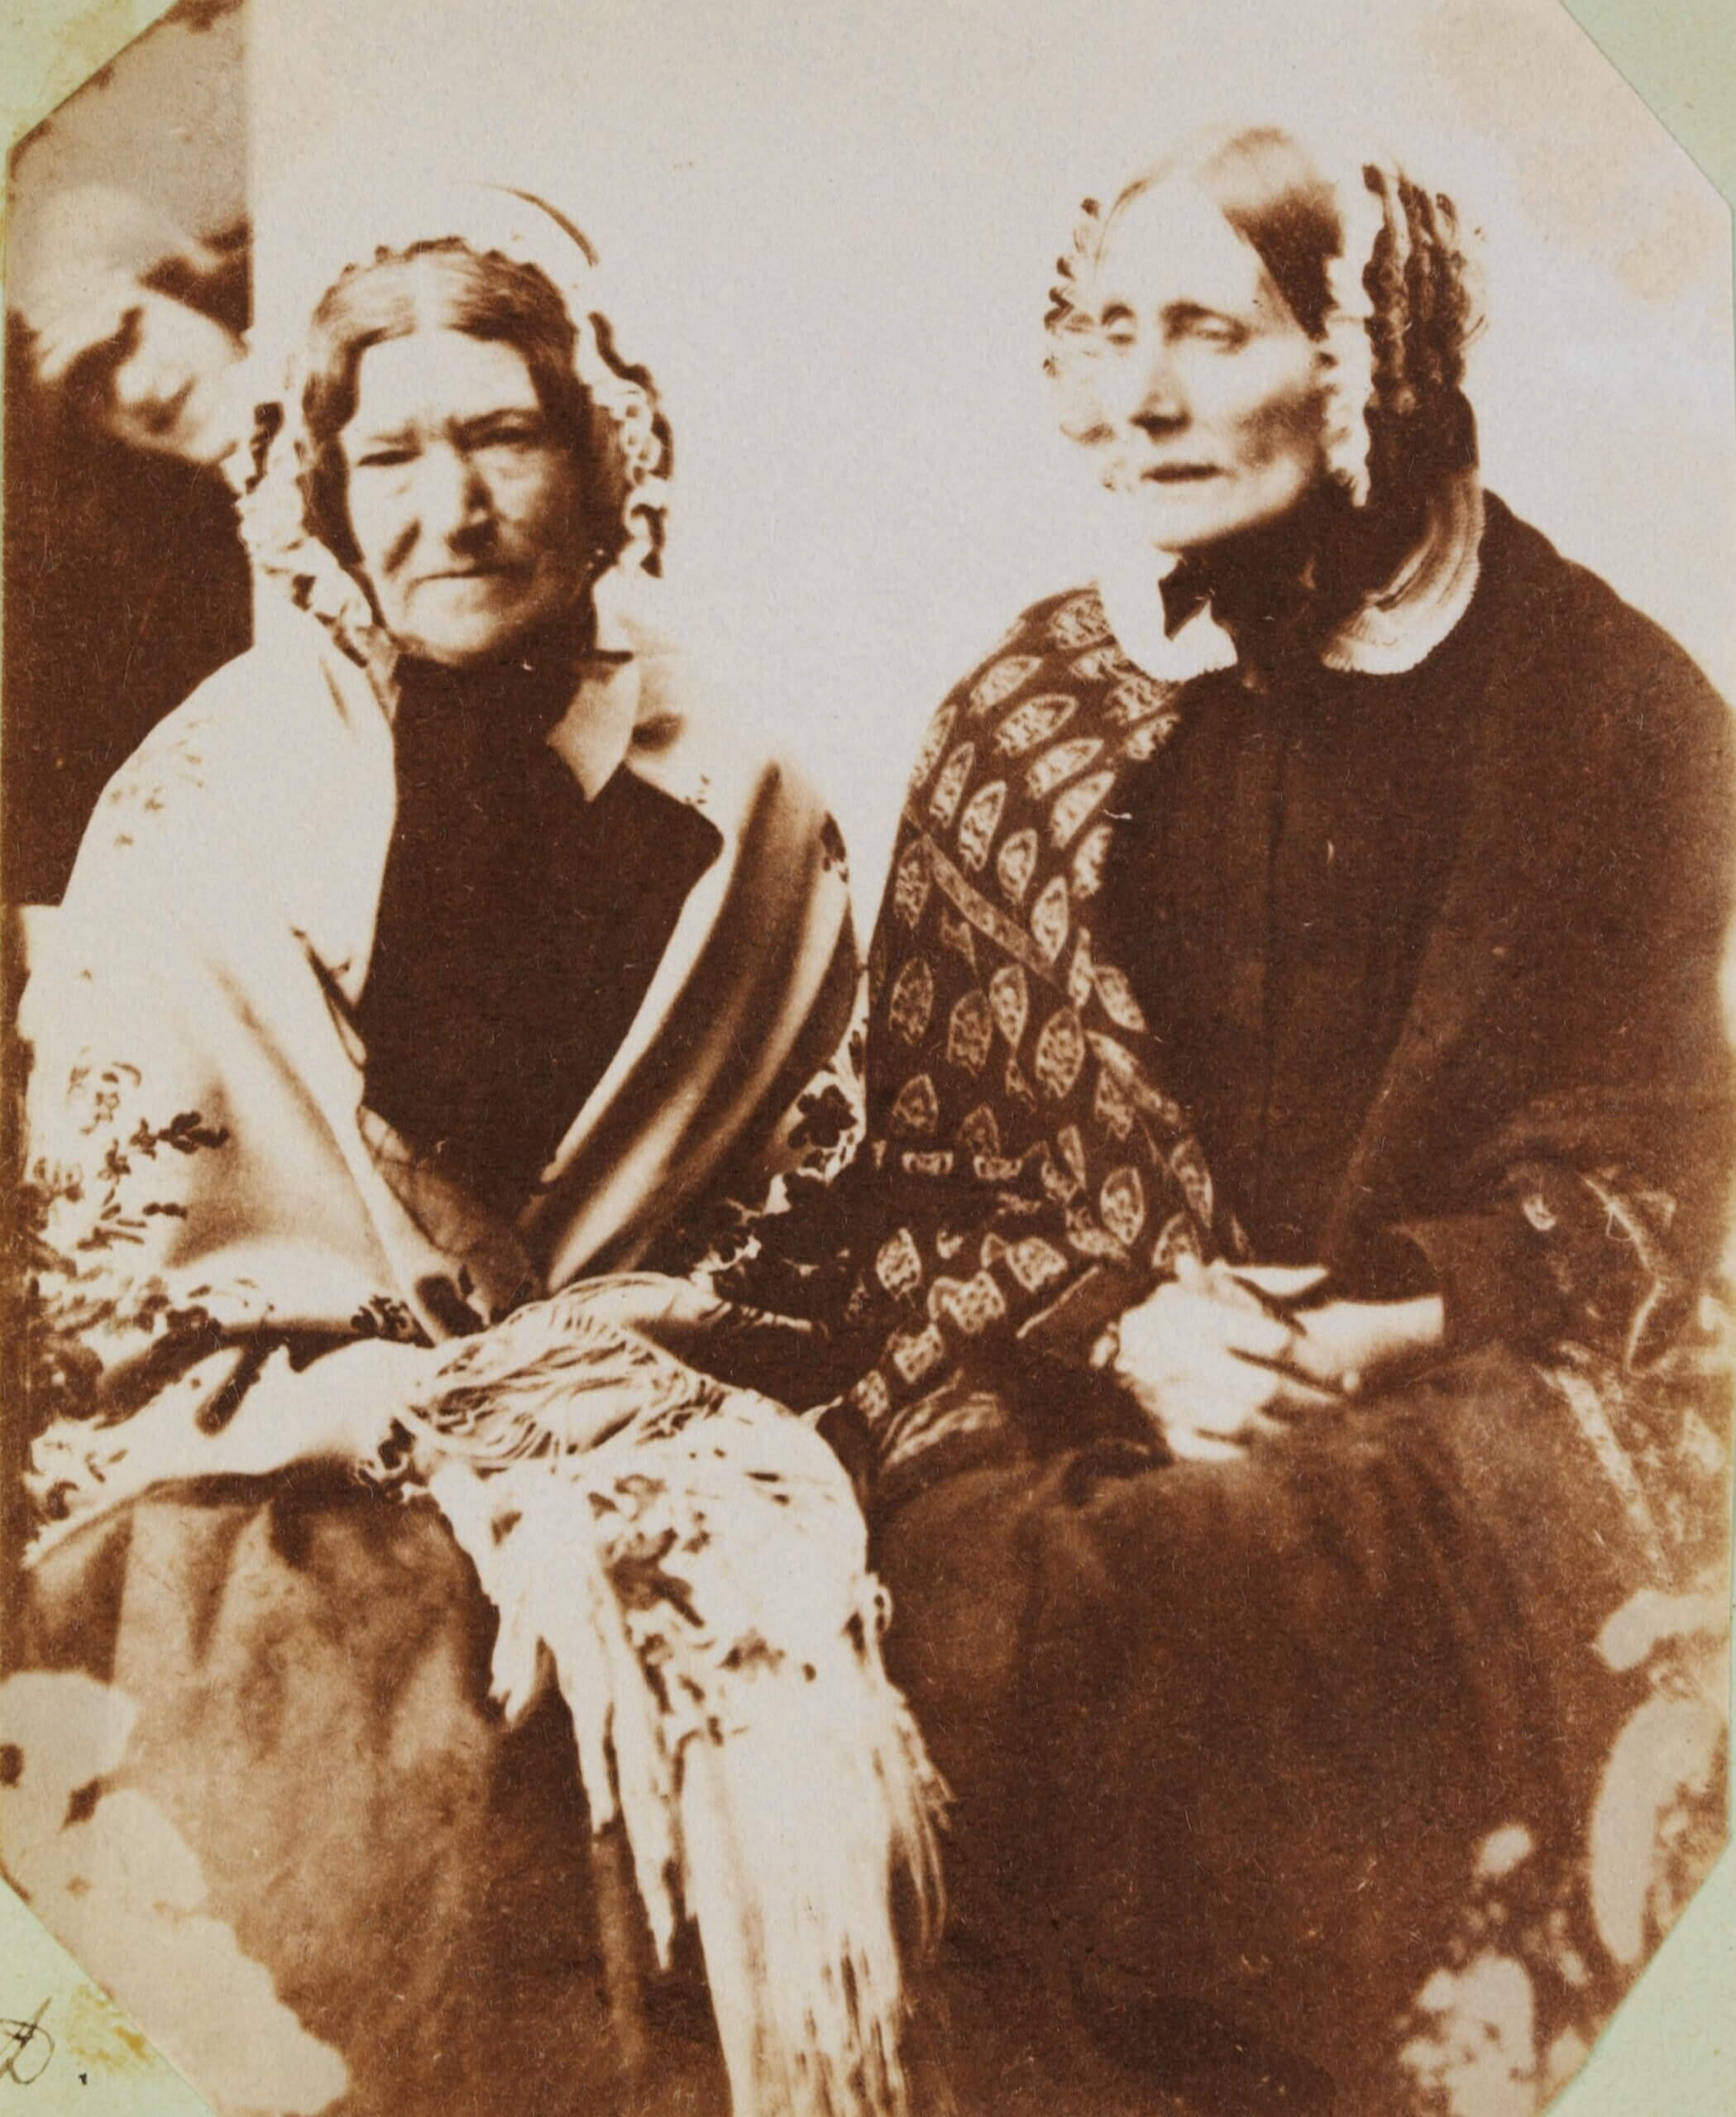 Mary Dillwyn (1816-1906), <i>Sally and Mrs Reed</i>, salt print, c.1853, The National Library of Wales